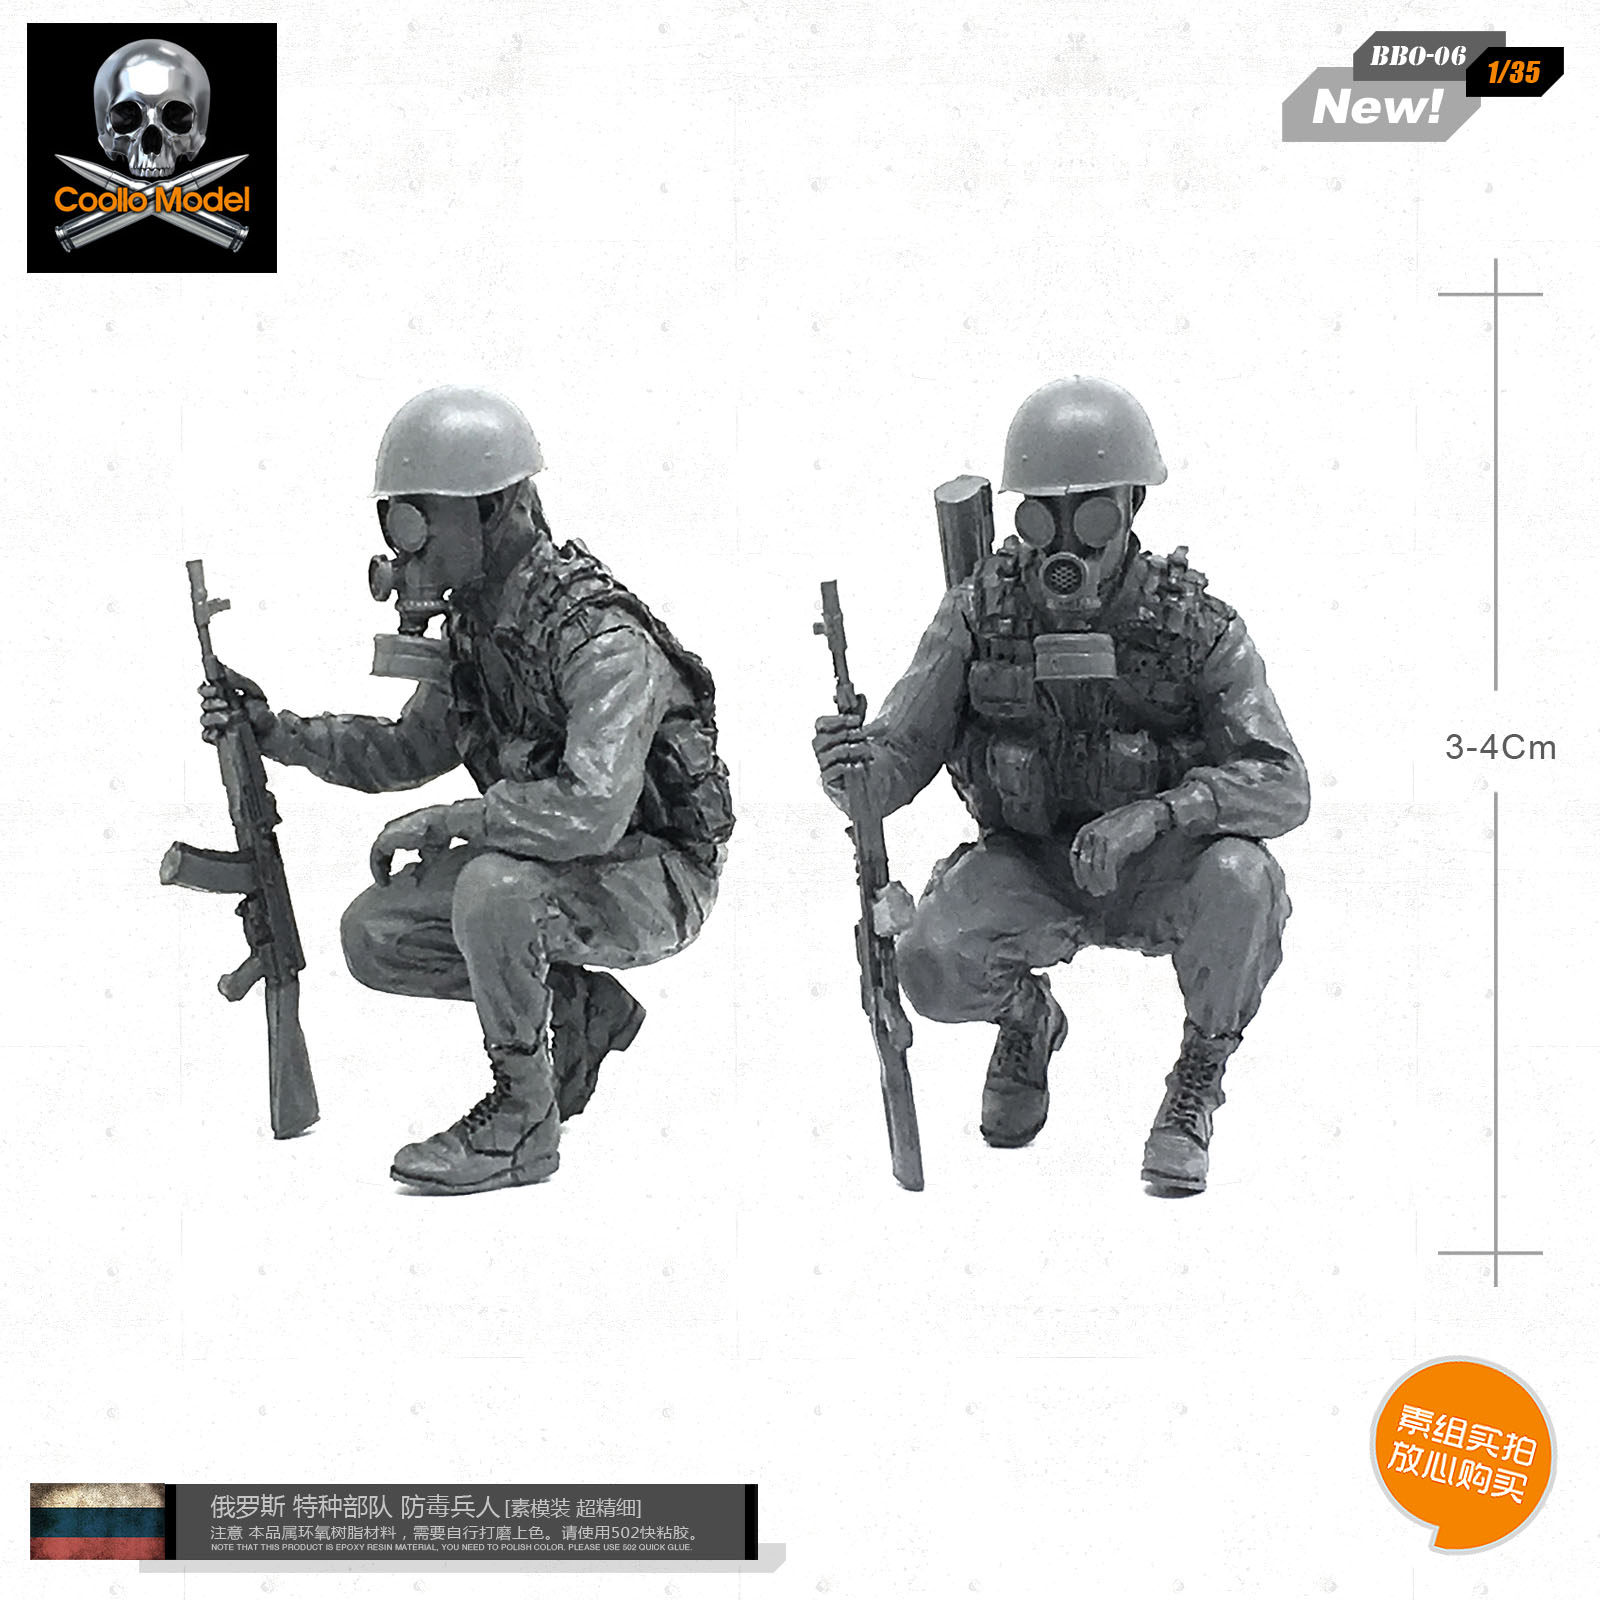 1/35 Resin Kits Model Soilder Russian Special Forces Anti-virus Resin Army Self-assembled BBO-06